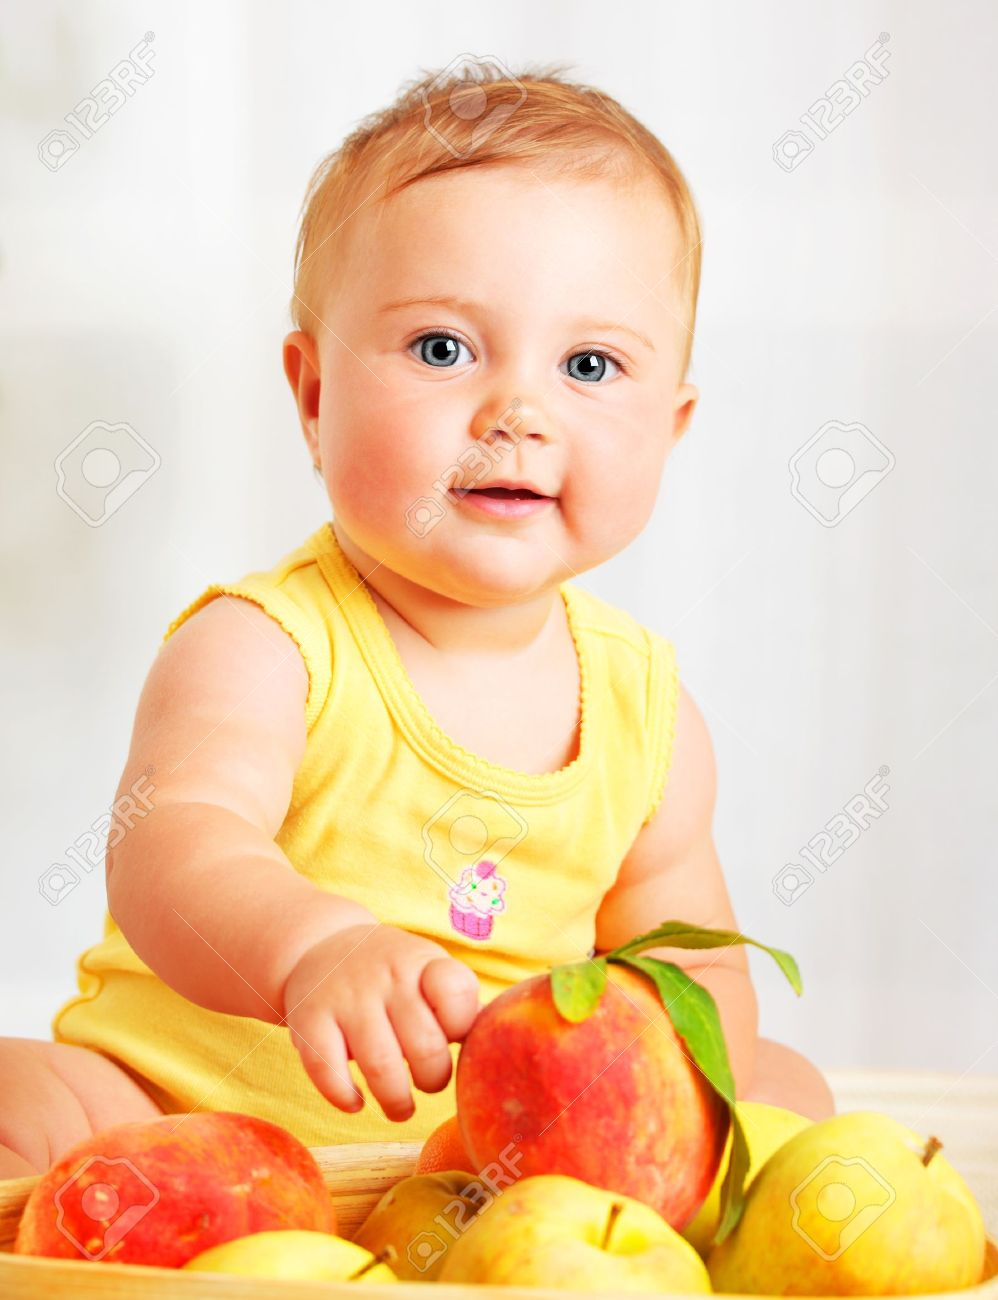 littl nude kids small children: Little baby choosing fruits, closeup portrait, concept of  health care &